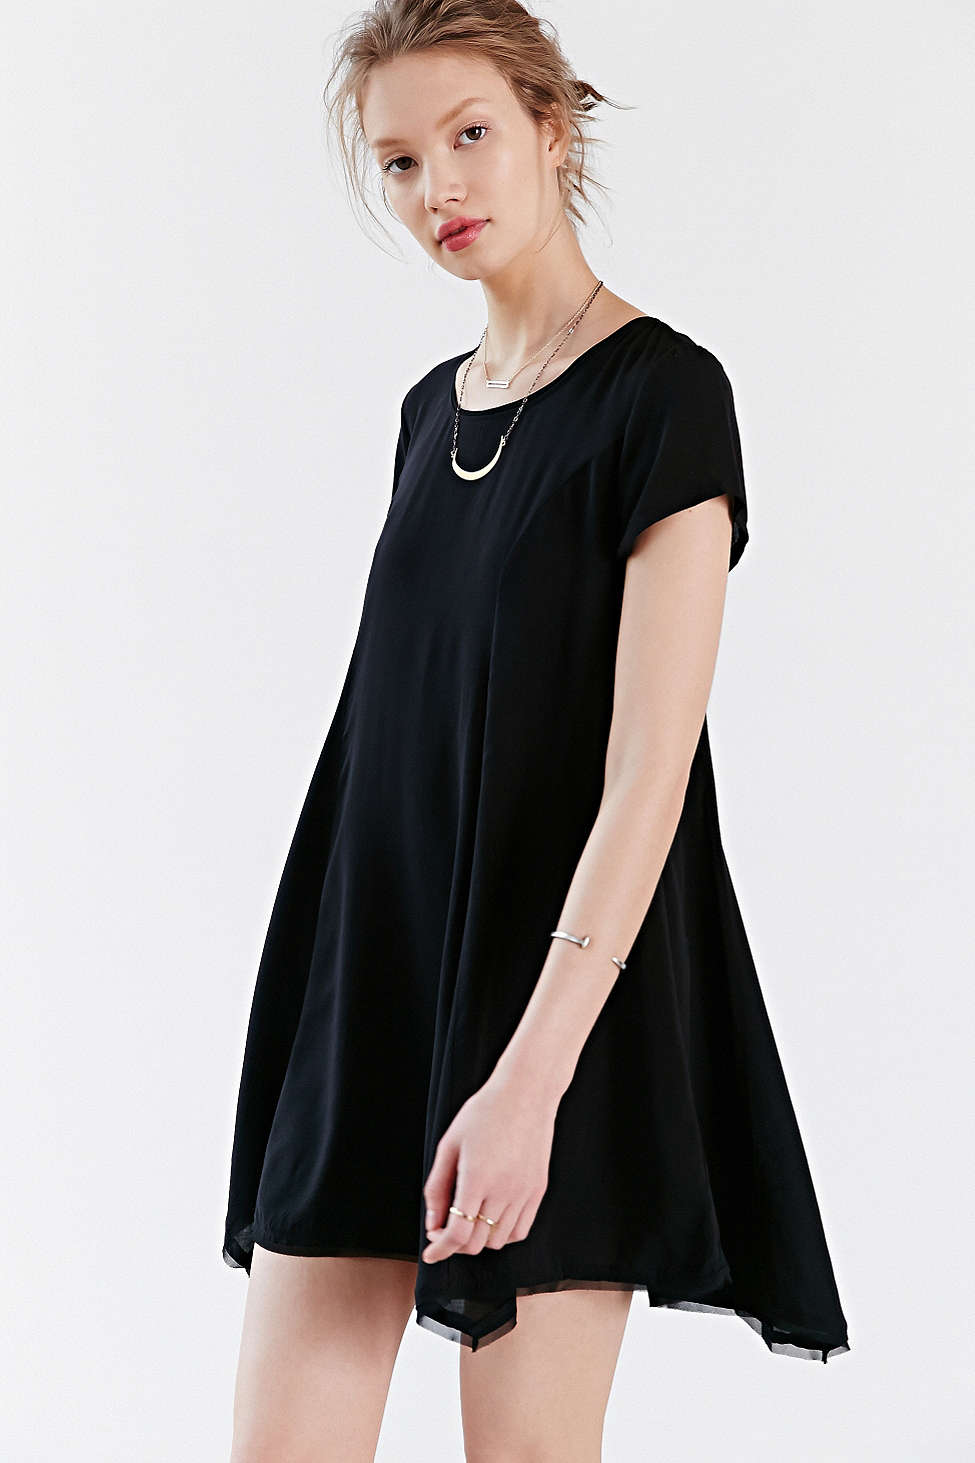 Urban Outfitters, Silence + Noise Witchy T-Shirt Dress, Black